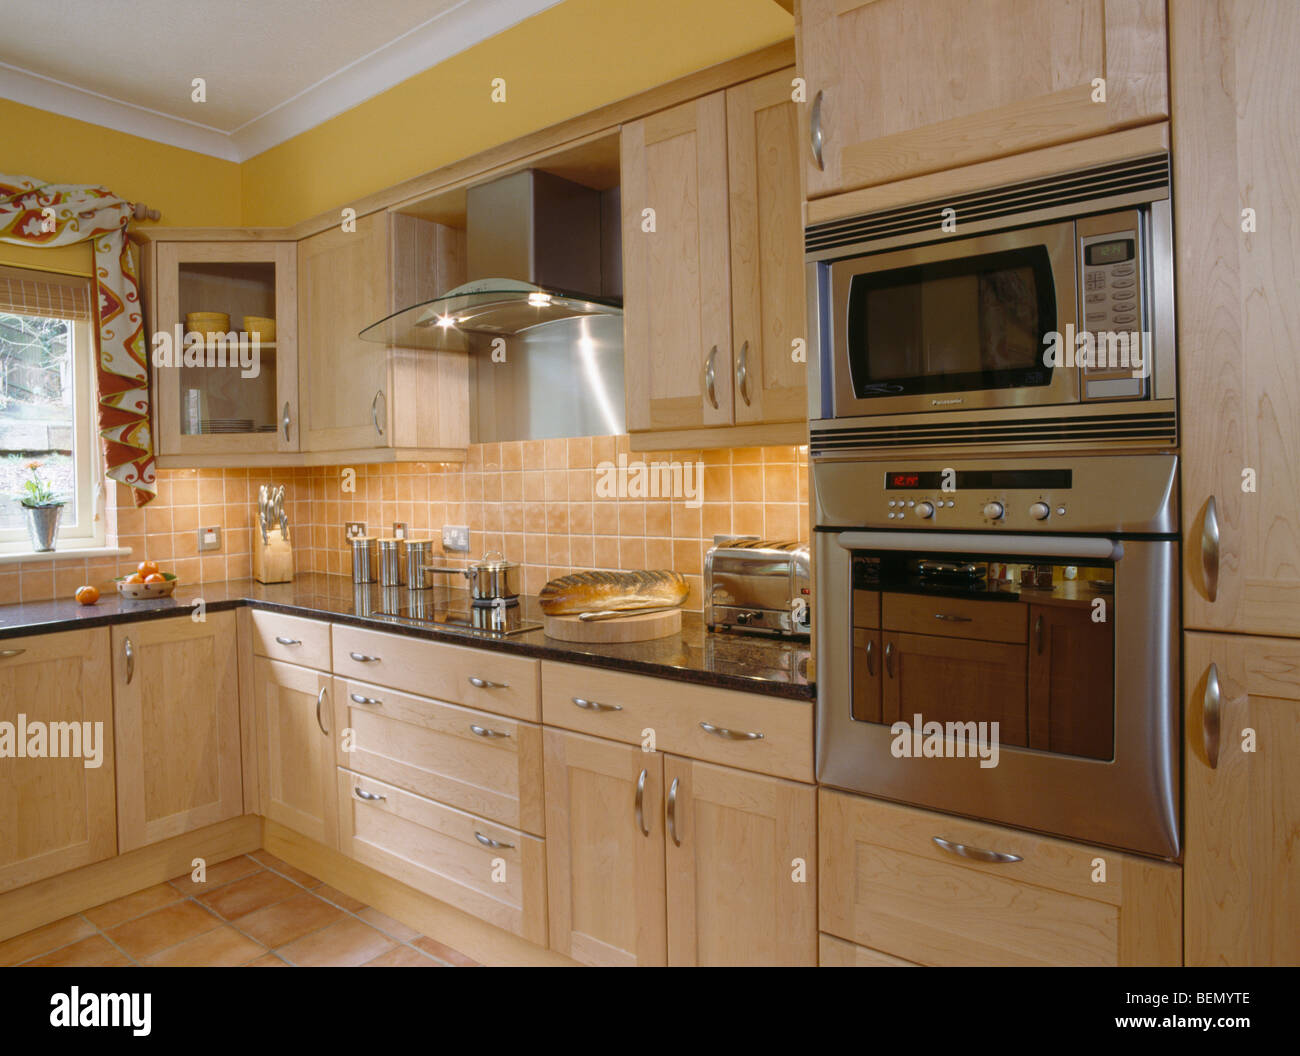 Pale Orange Kitchen eye-level oven and microwave in modern yellow kitchen with pale